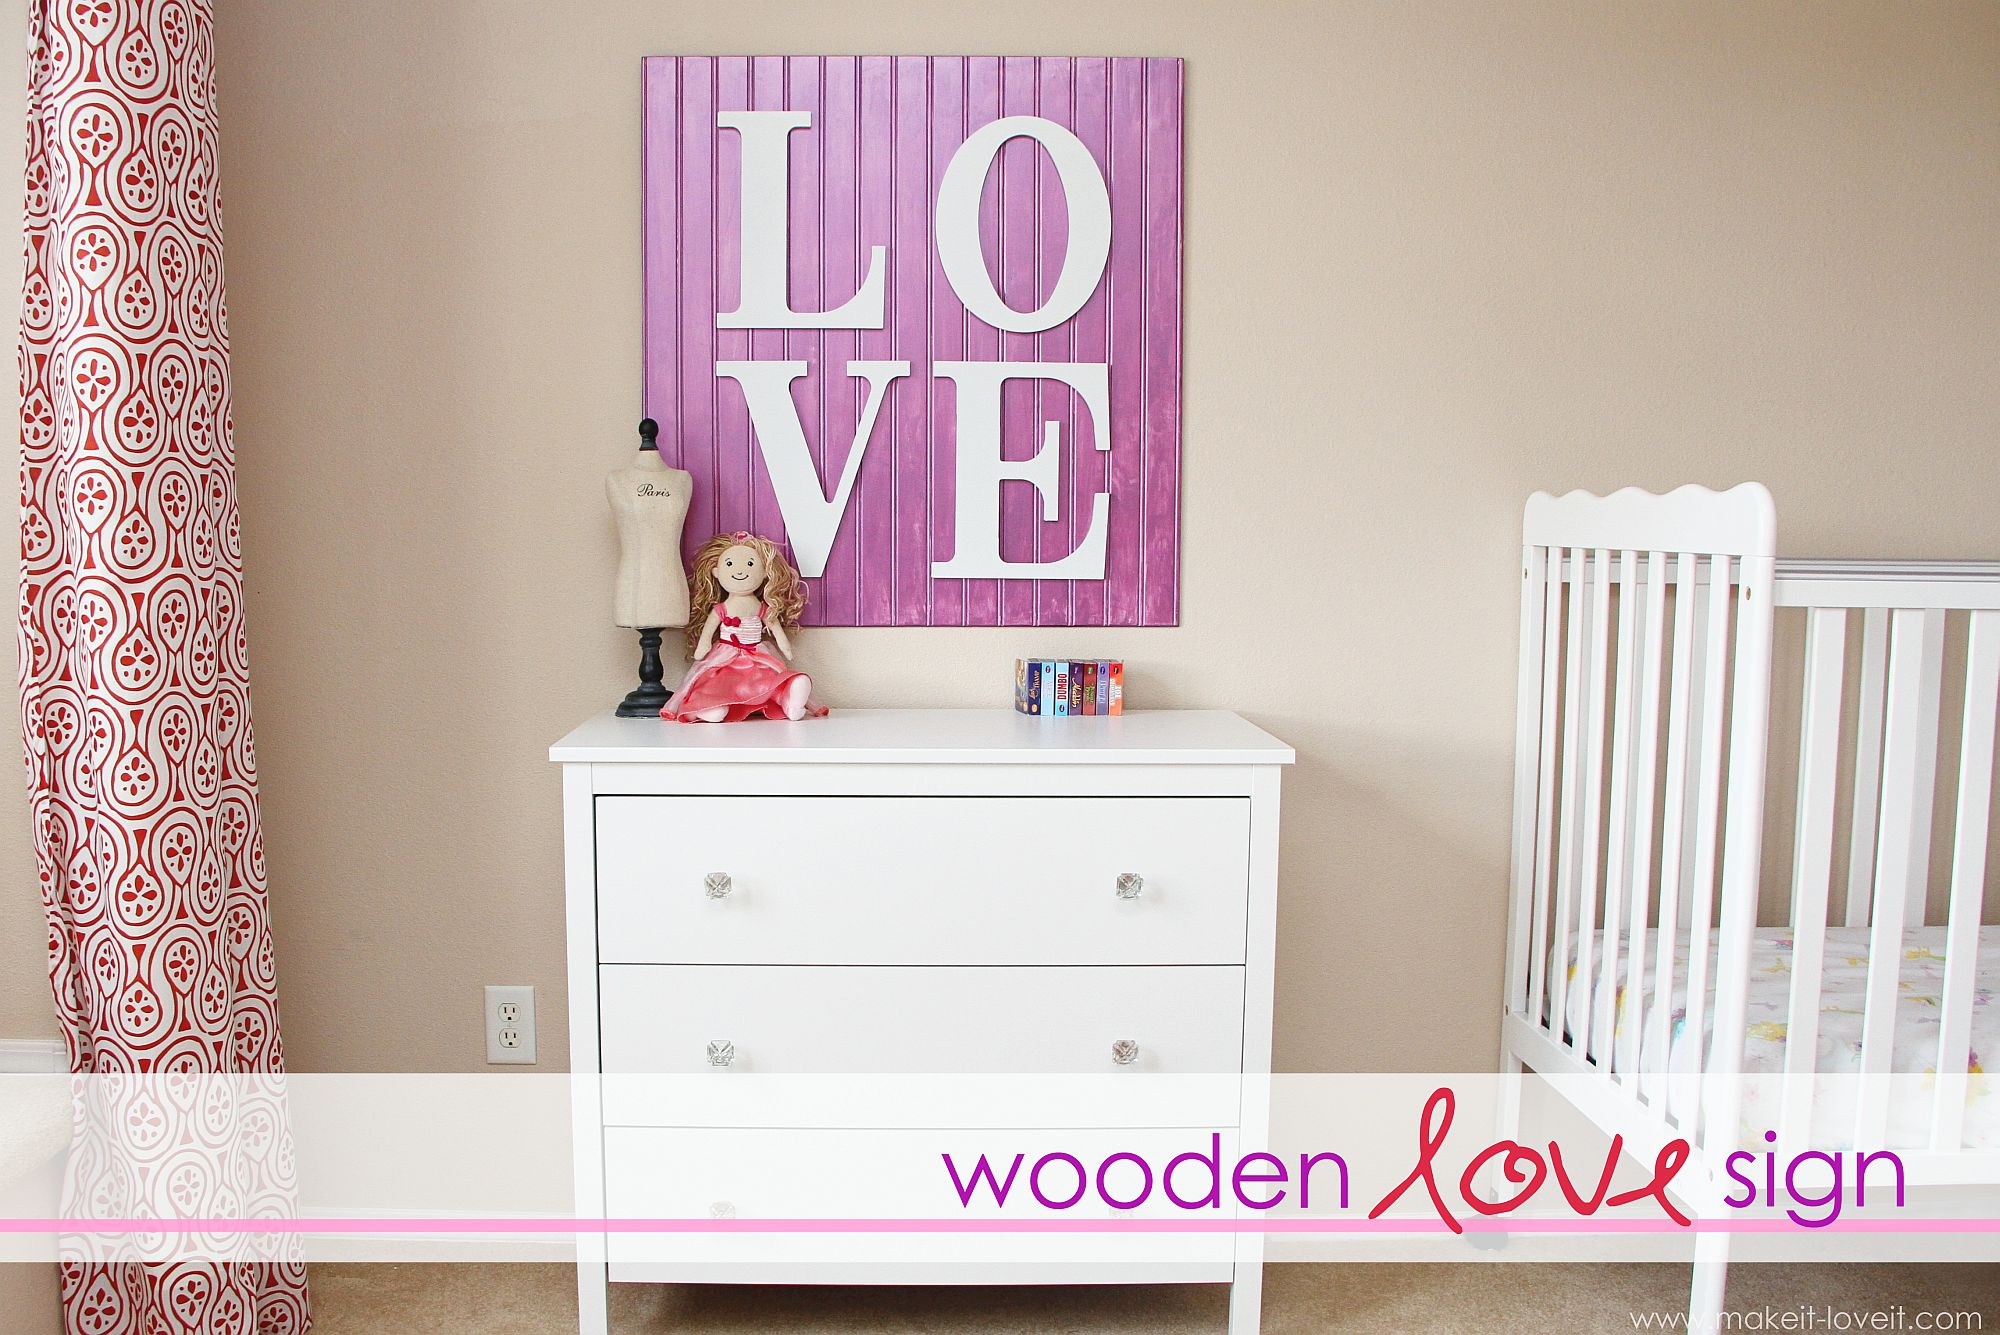 Striking-and-classy-wooden-love-sign-in-purple